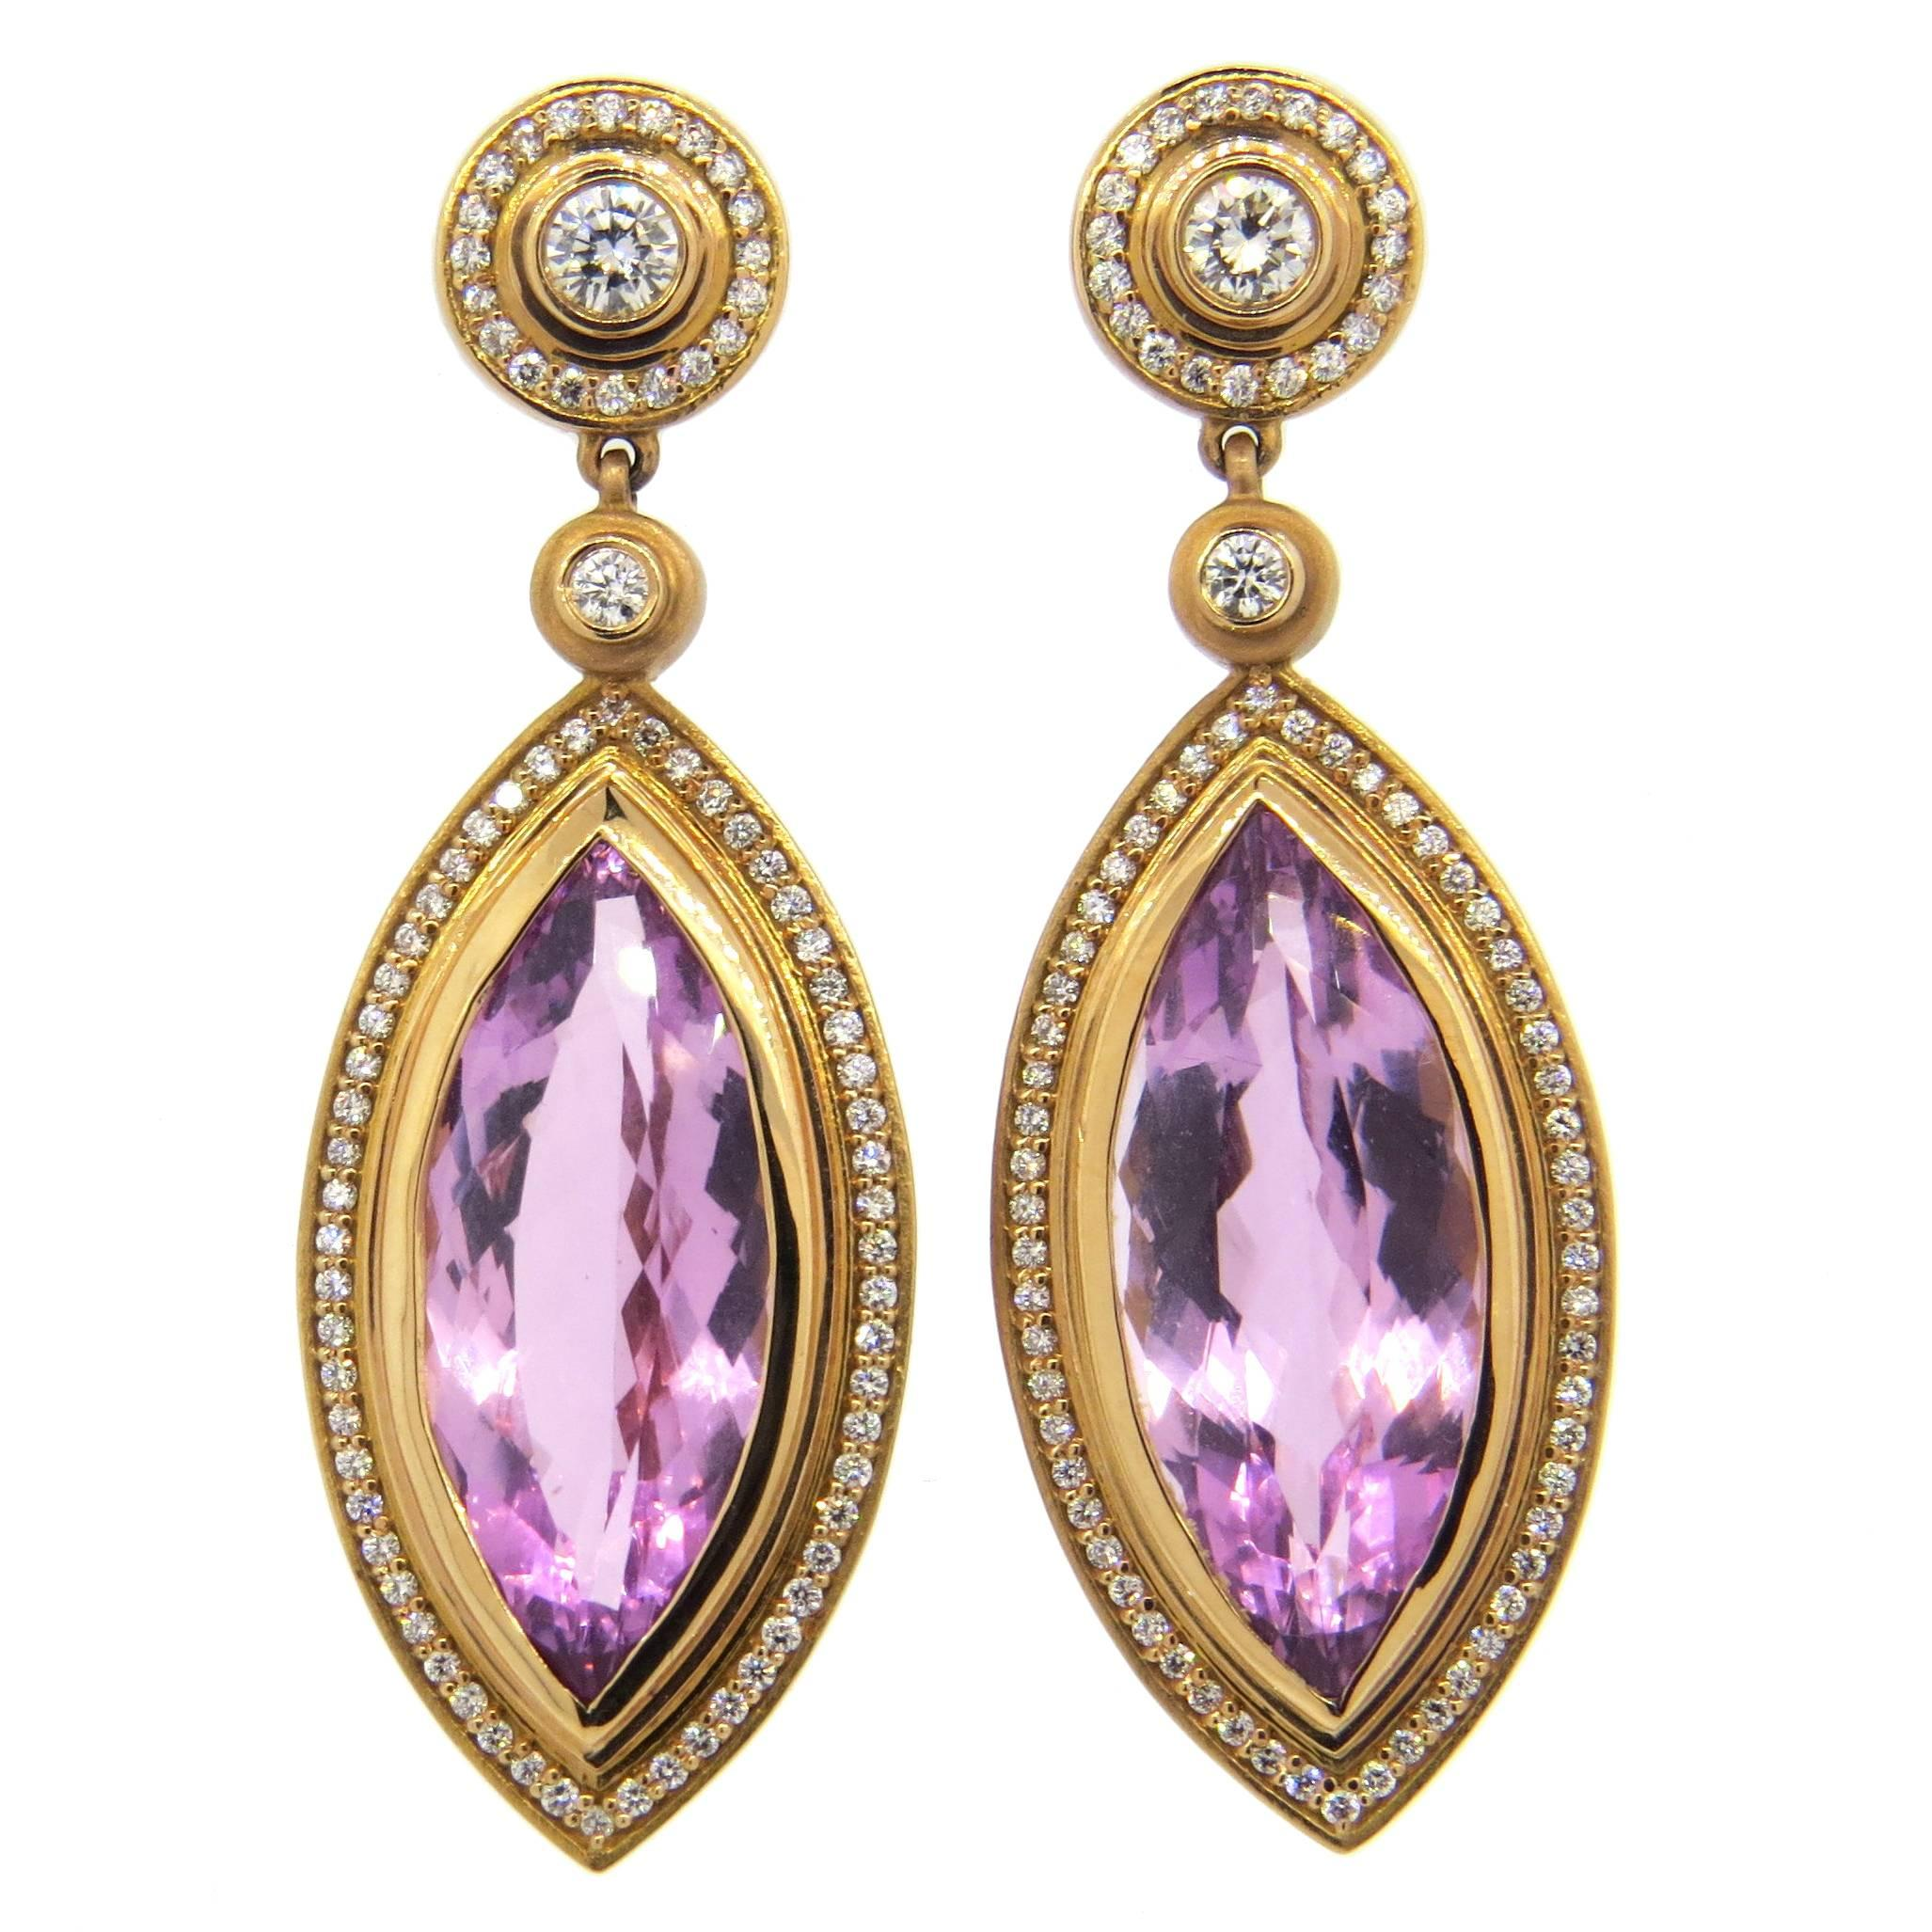 jewelry overstock today earrings watches sapphire pink kunzite light shipping free michael with valitutti product